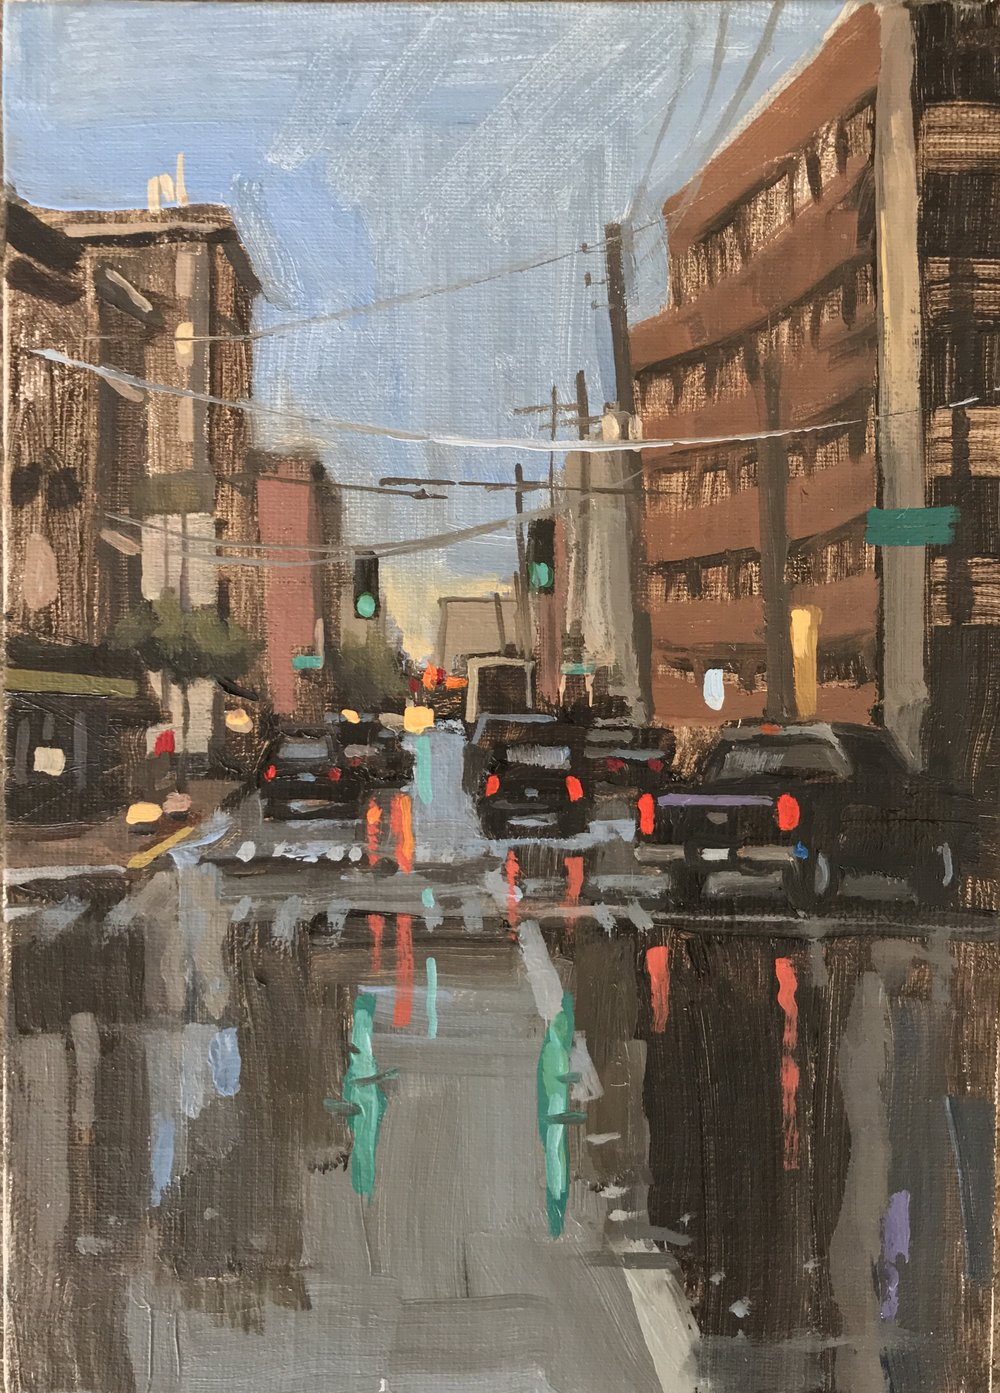 """Vine Street after Rain"" by Lynn Dunbar Bayus, Oil on canvas, 5x7in, 2018, POR"